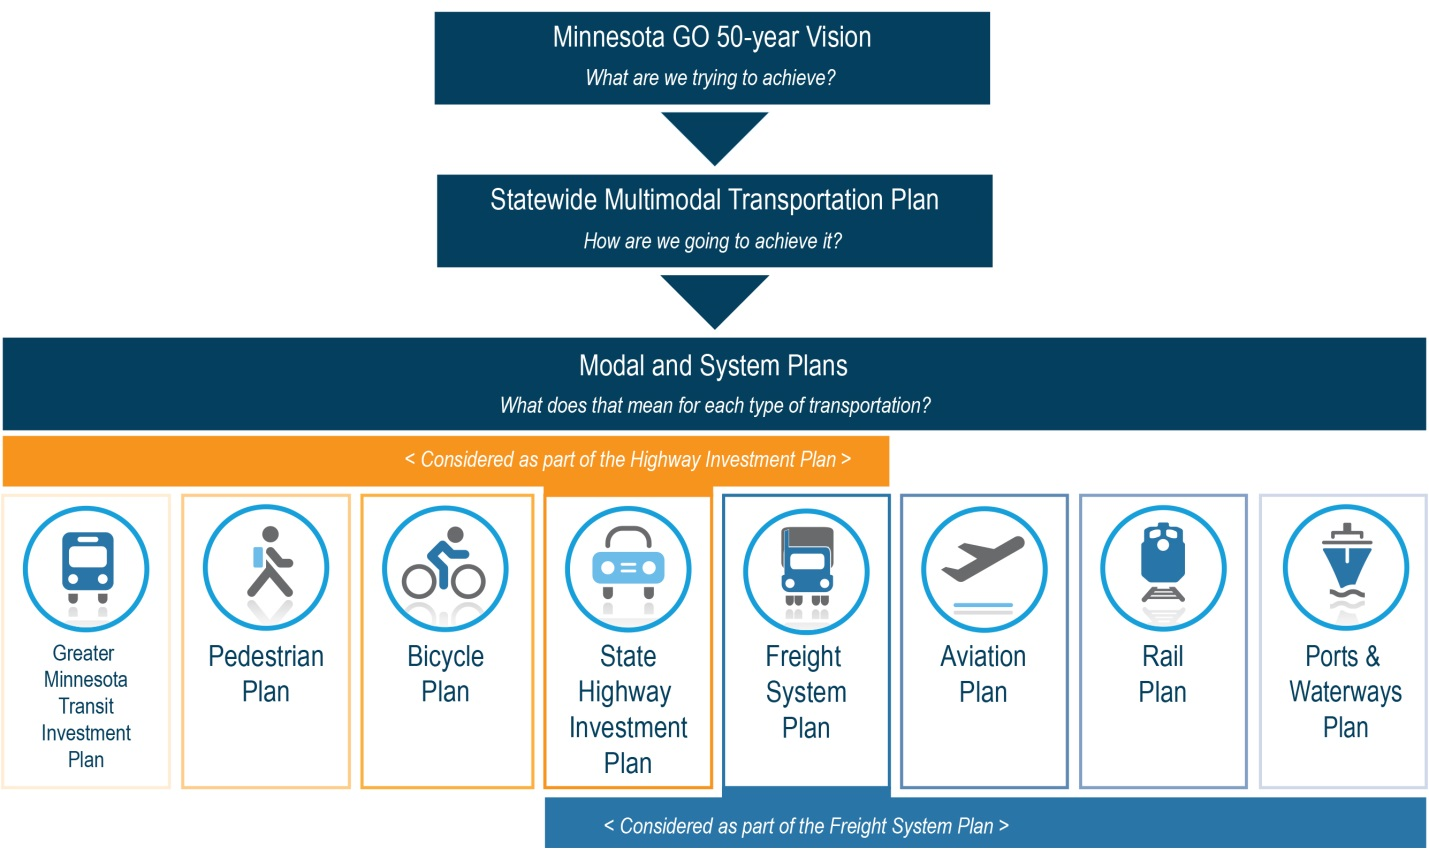 Figure 6-1: MnDOT's Family of Plans